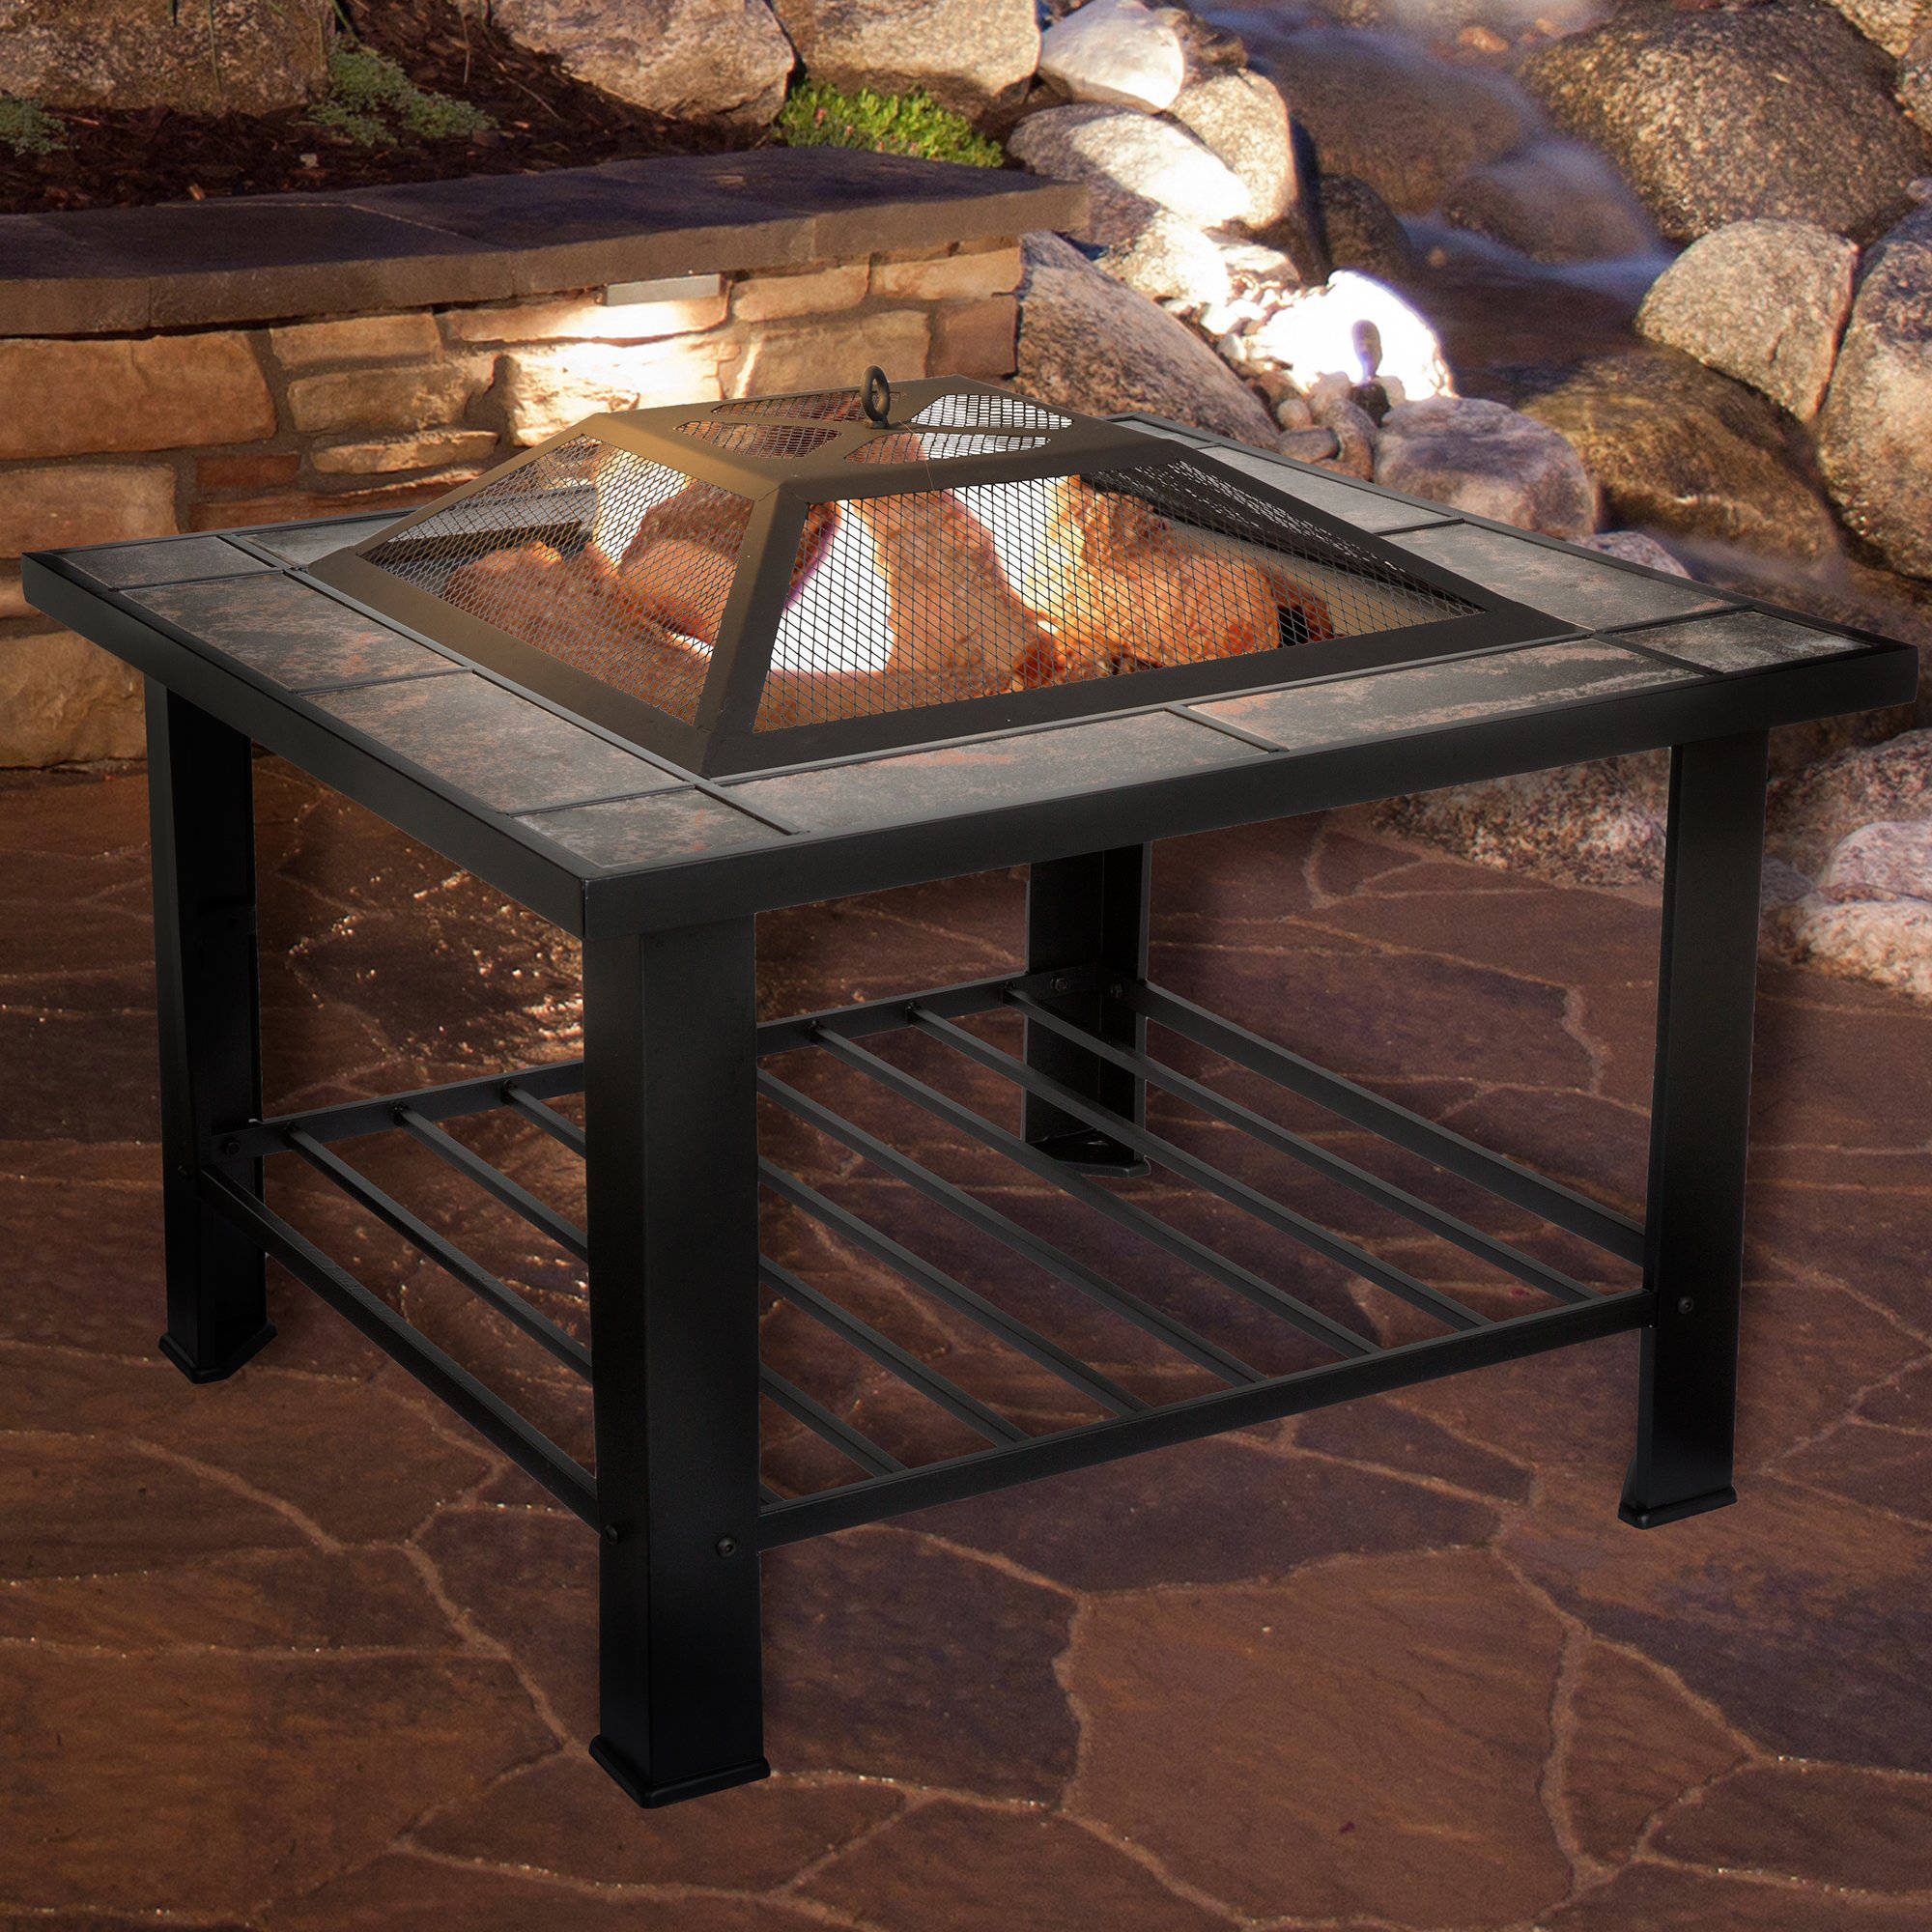 Fire Pit Set, Wood Burning Pit - Includes Screen, Cover and Log Poker - Great for Outdoor and Patio, 30 inch Square Marble Tile Fire pit by Pure Garden